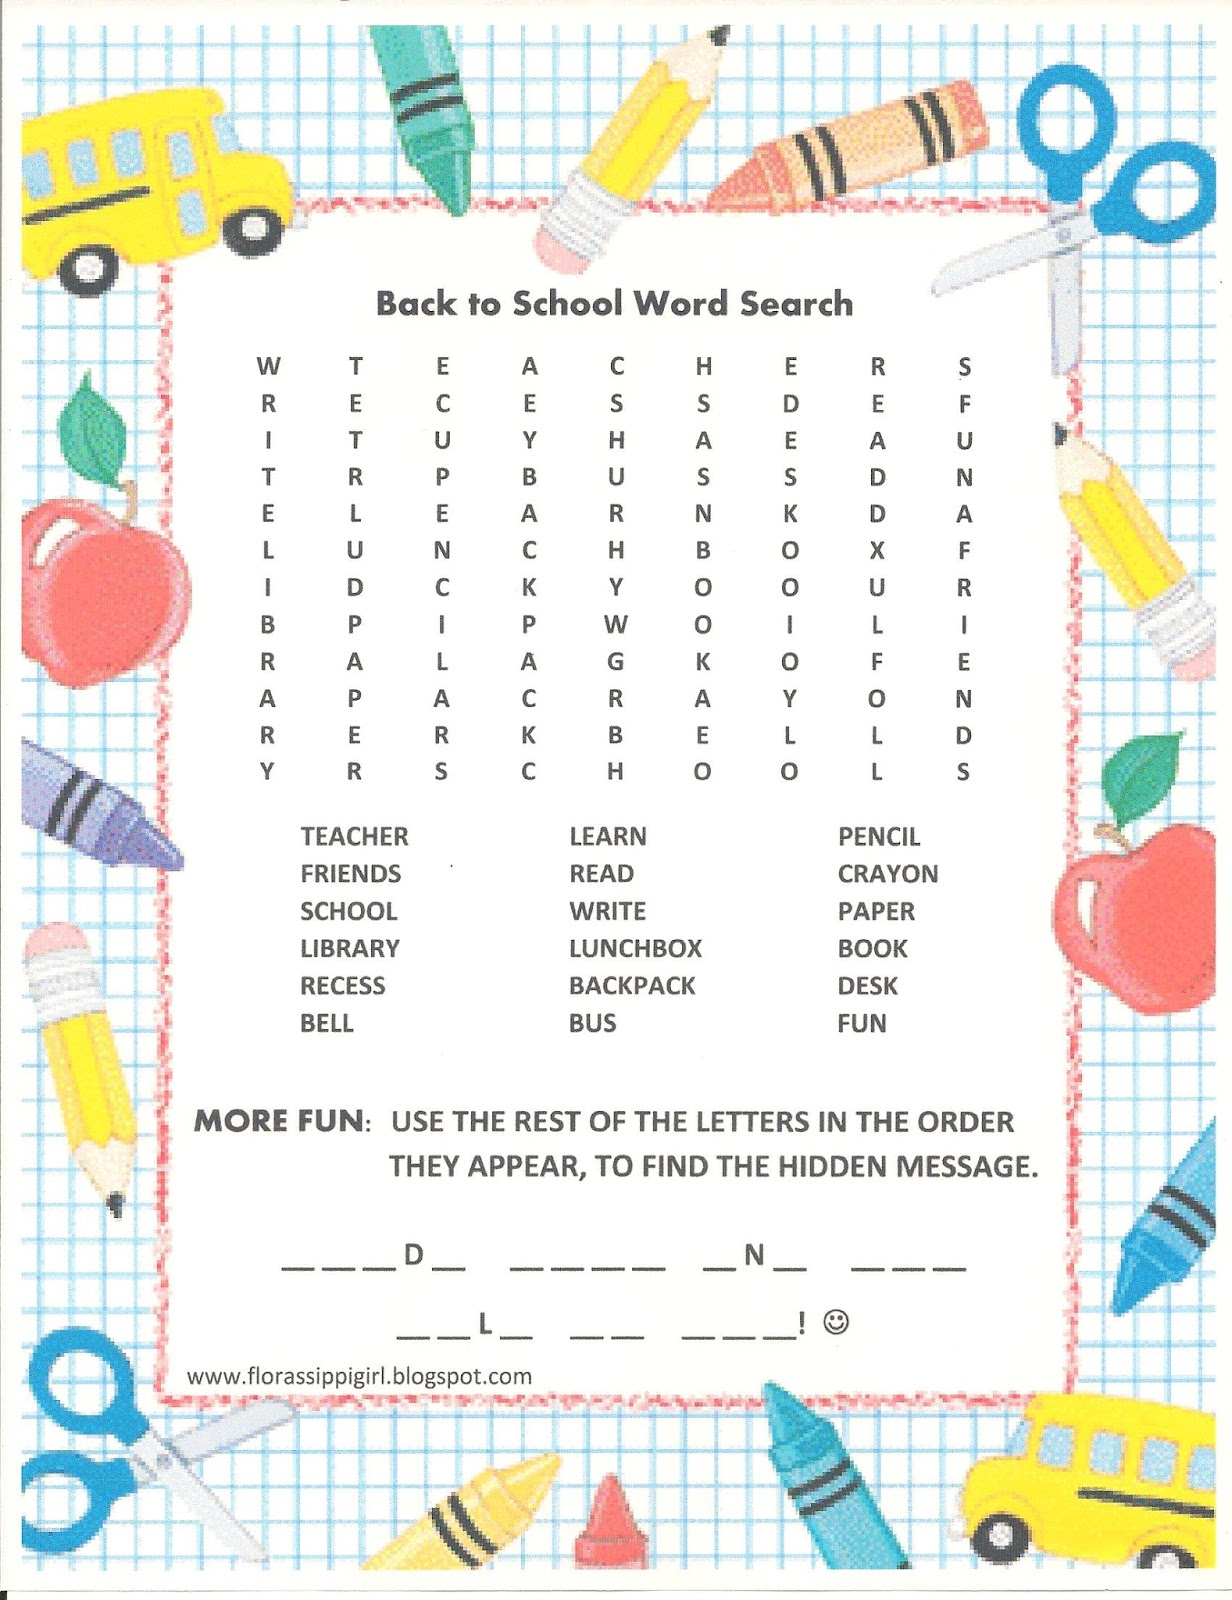 Florassippi Girl Back To School Word Search